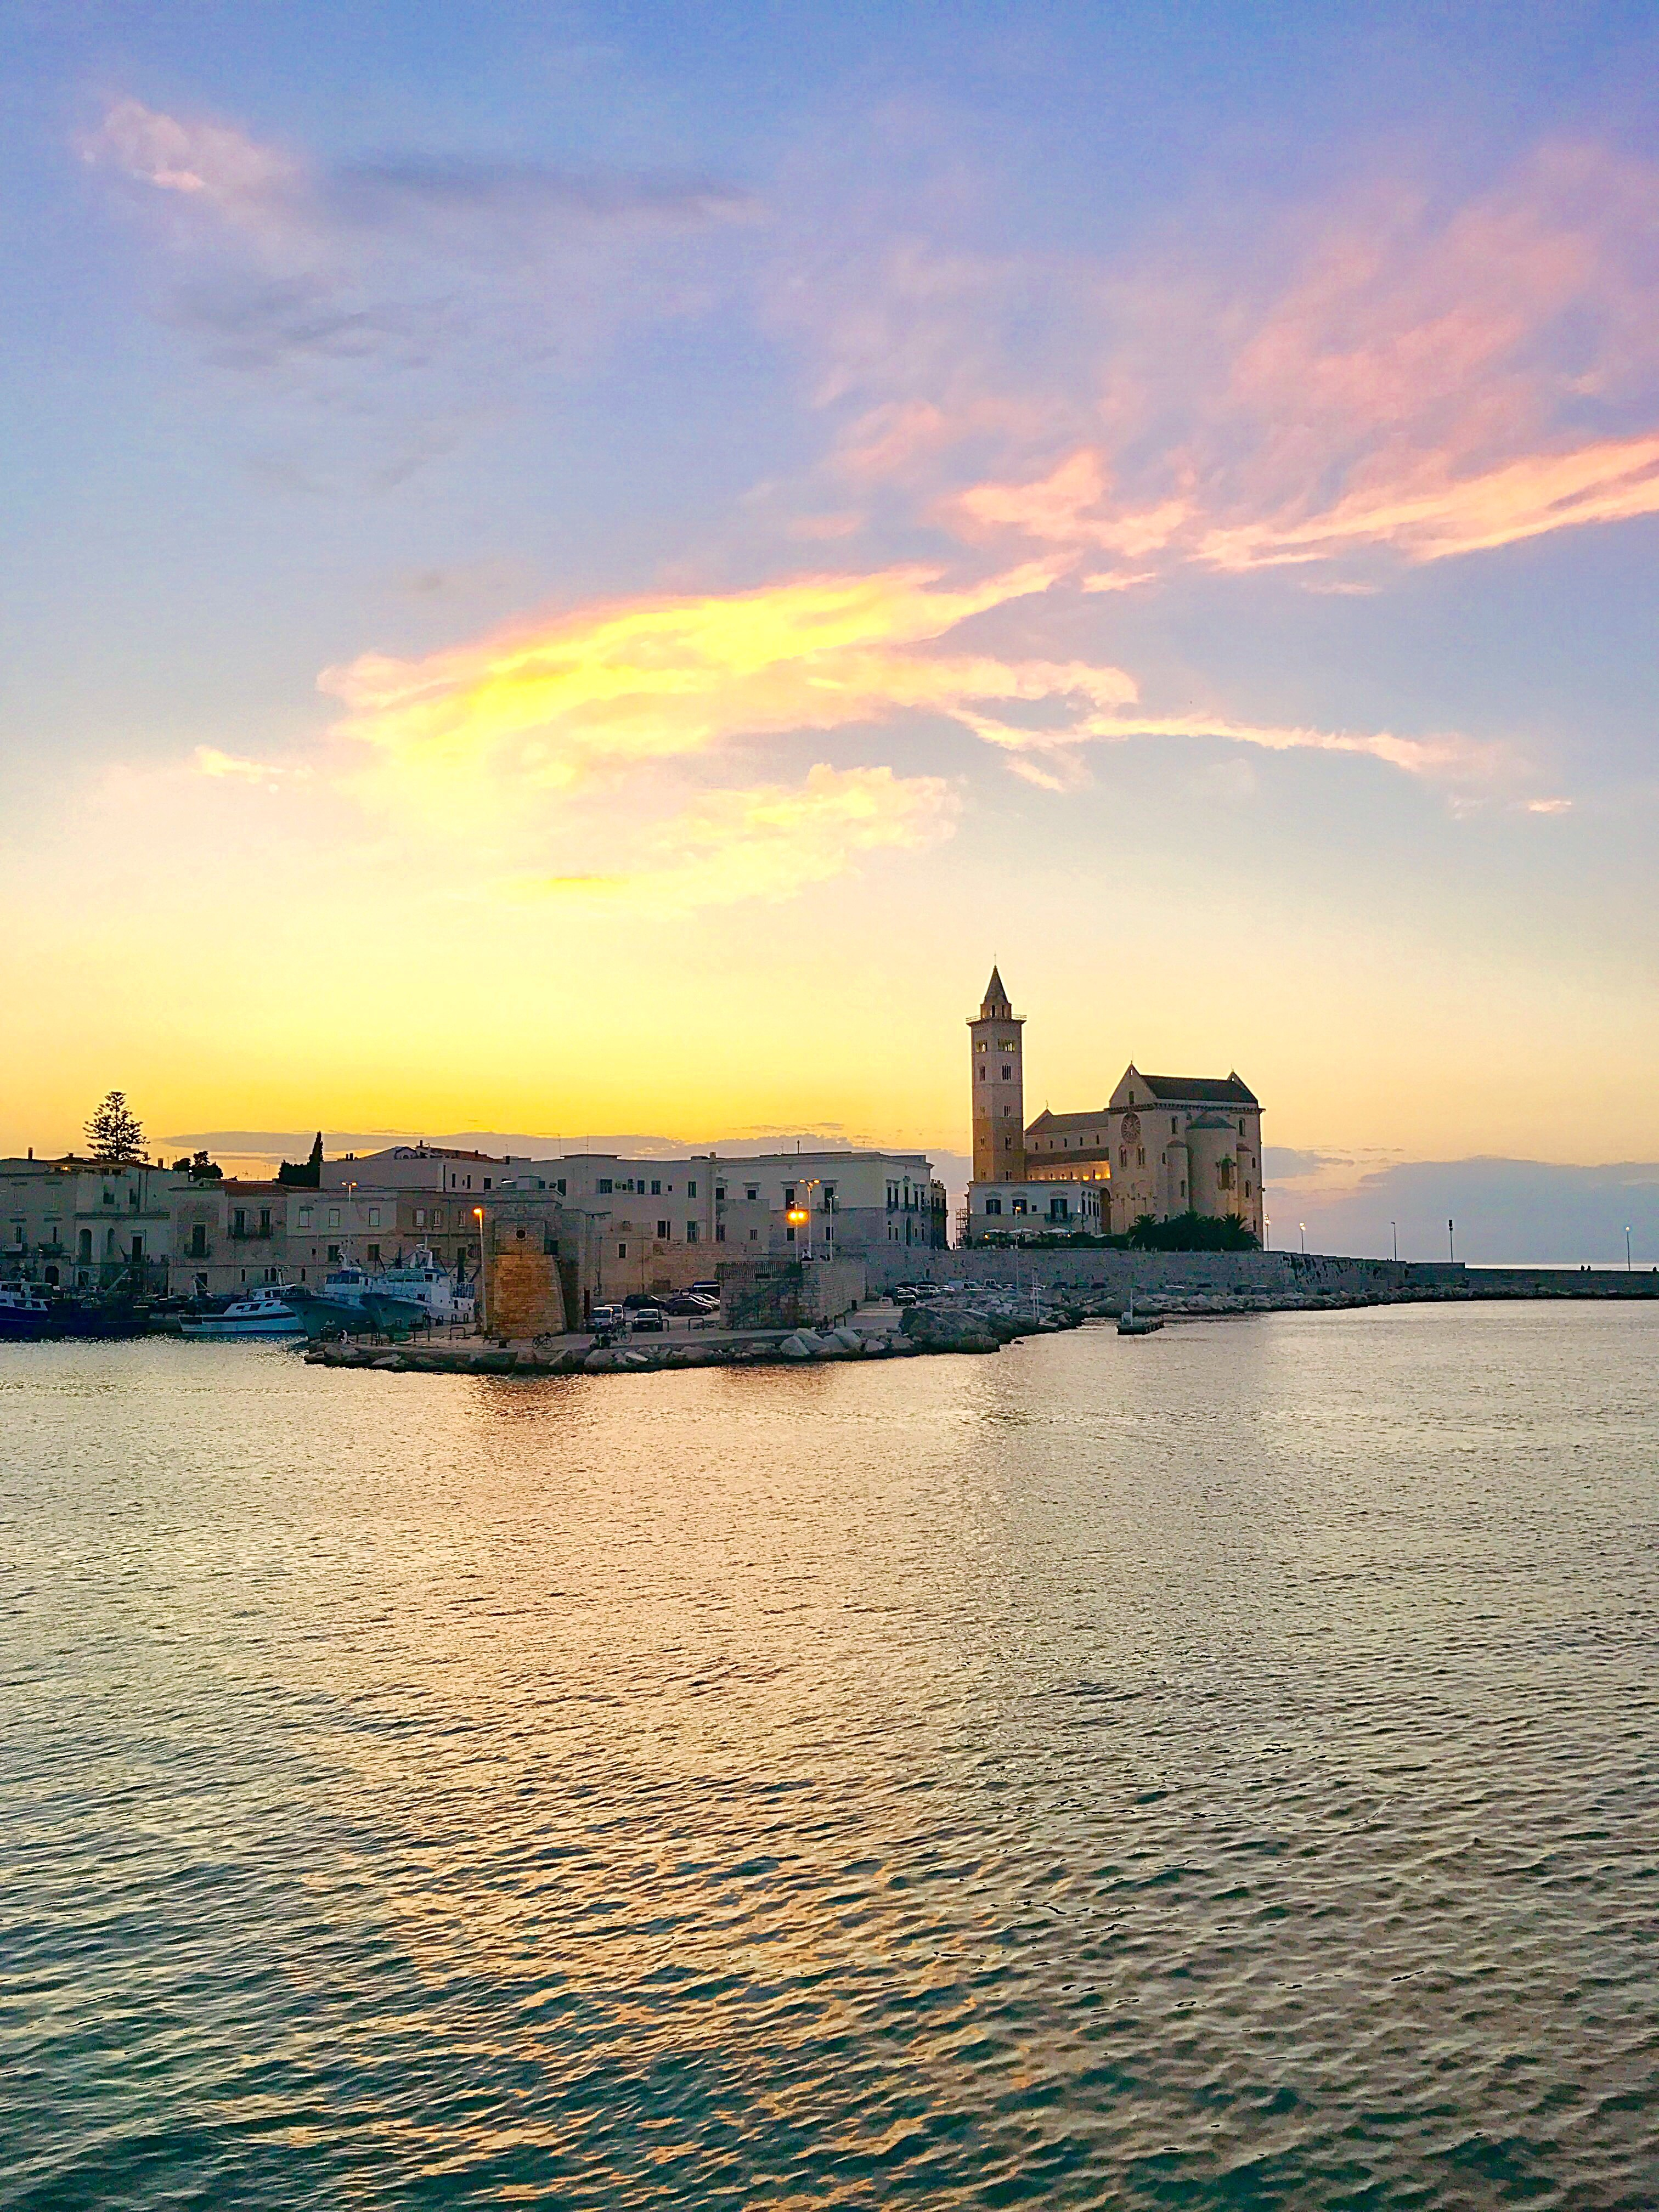 Trani's cathedral